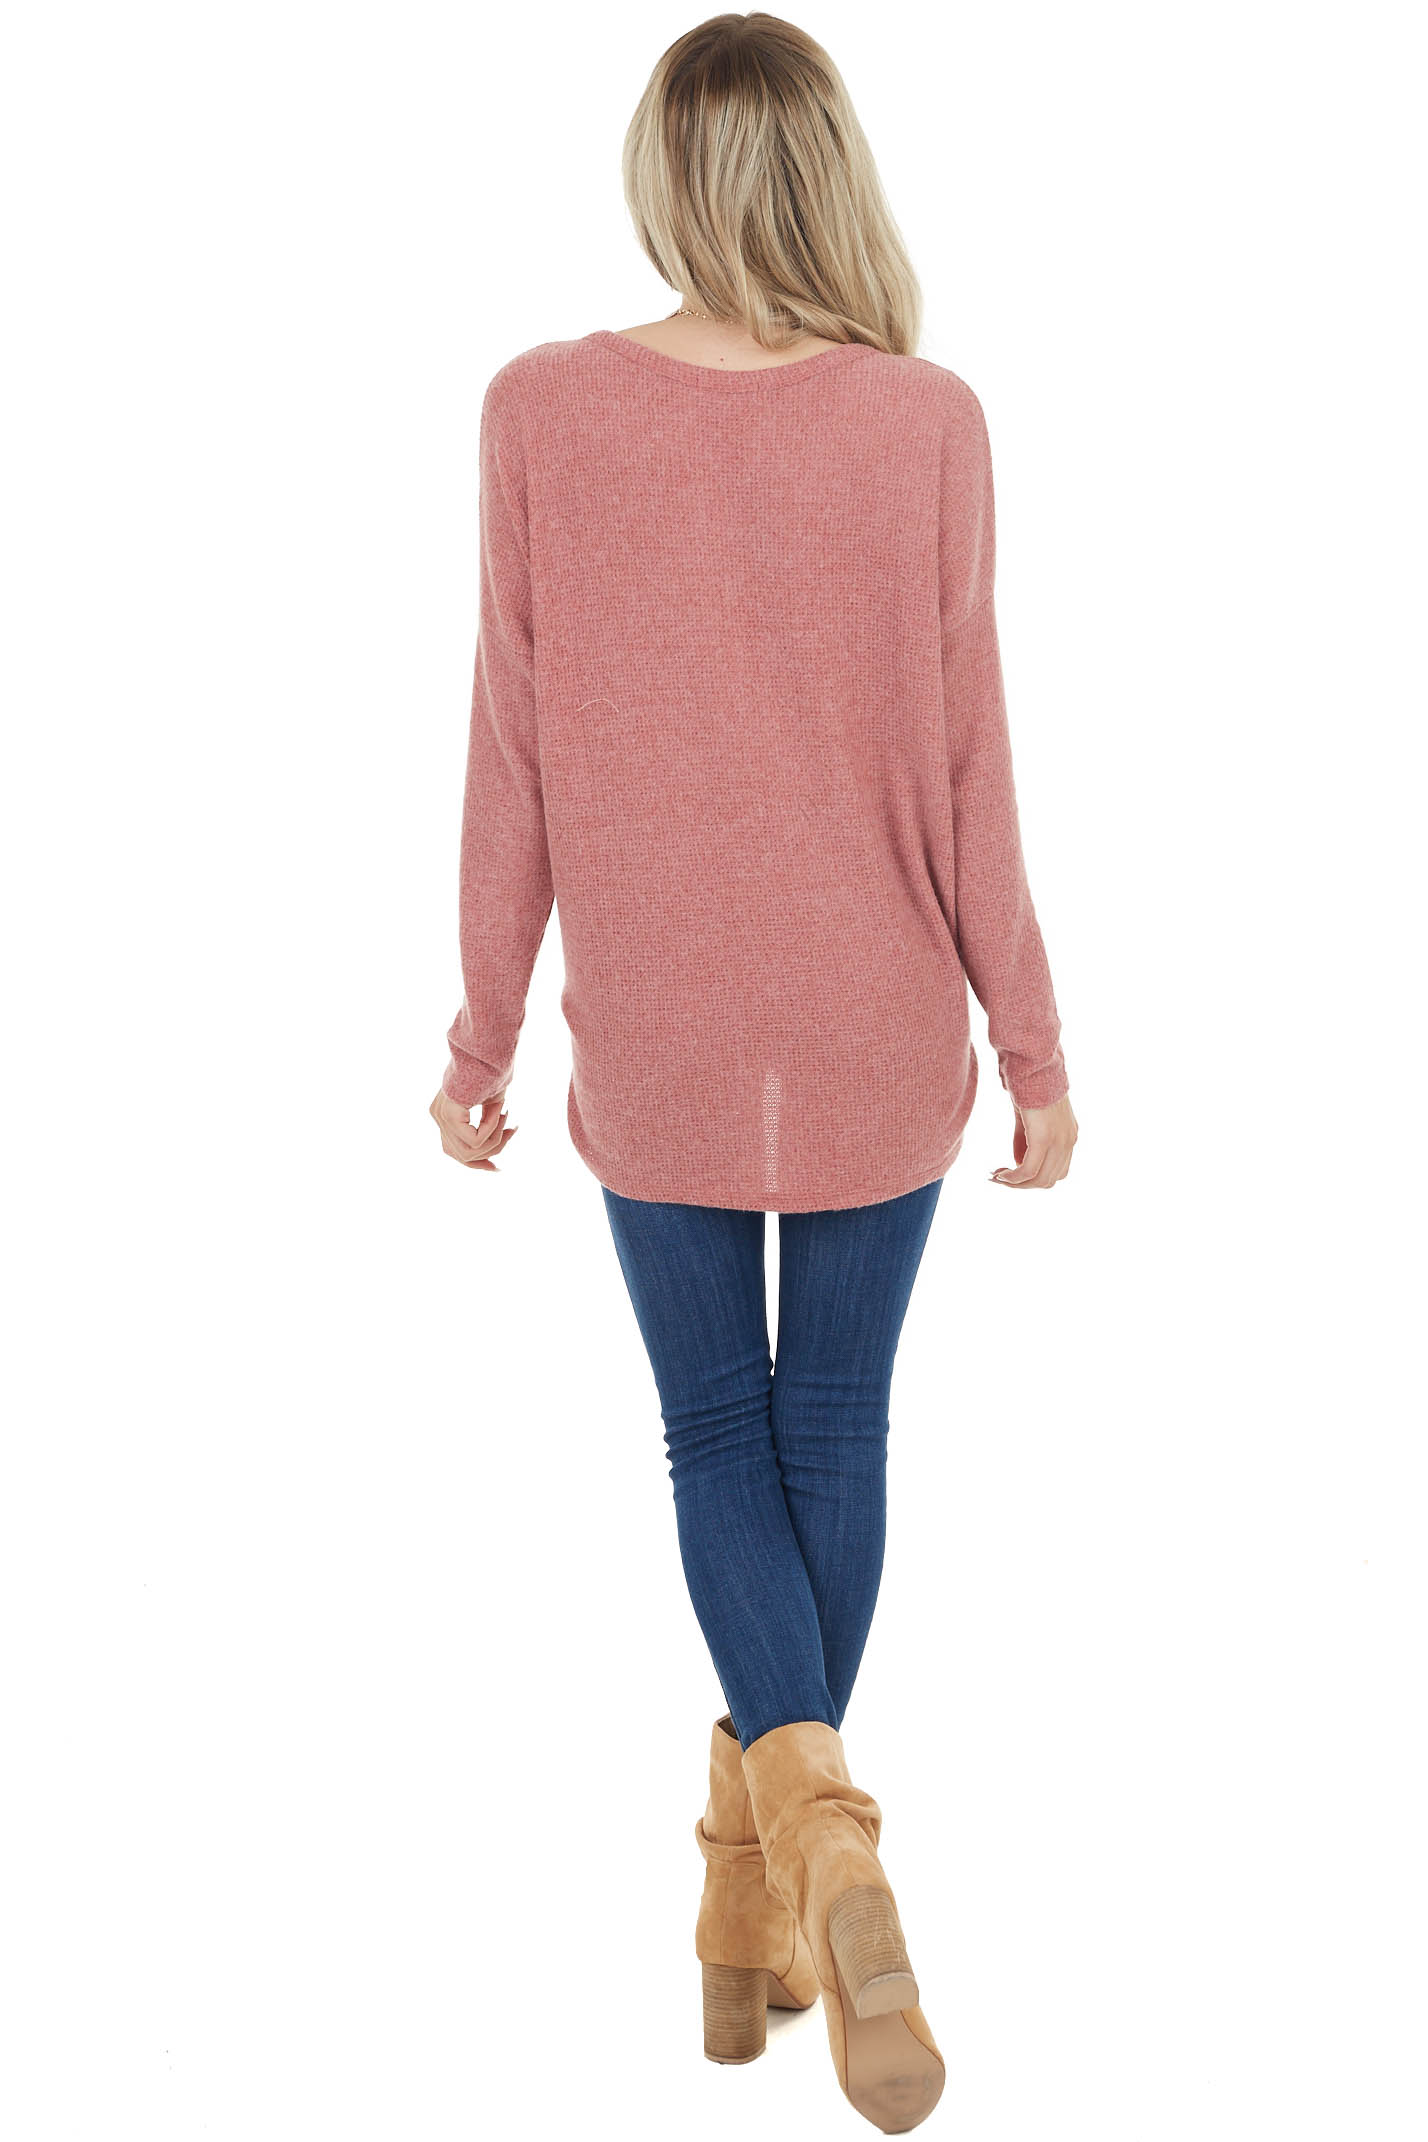 Marsala Soft Waffle Knit Long Sleeve Button Up Top with Tie